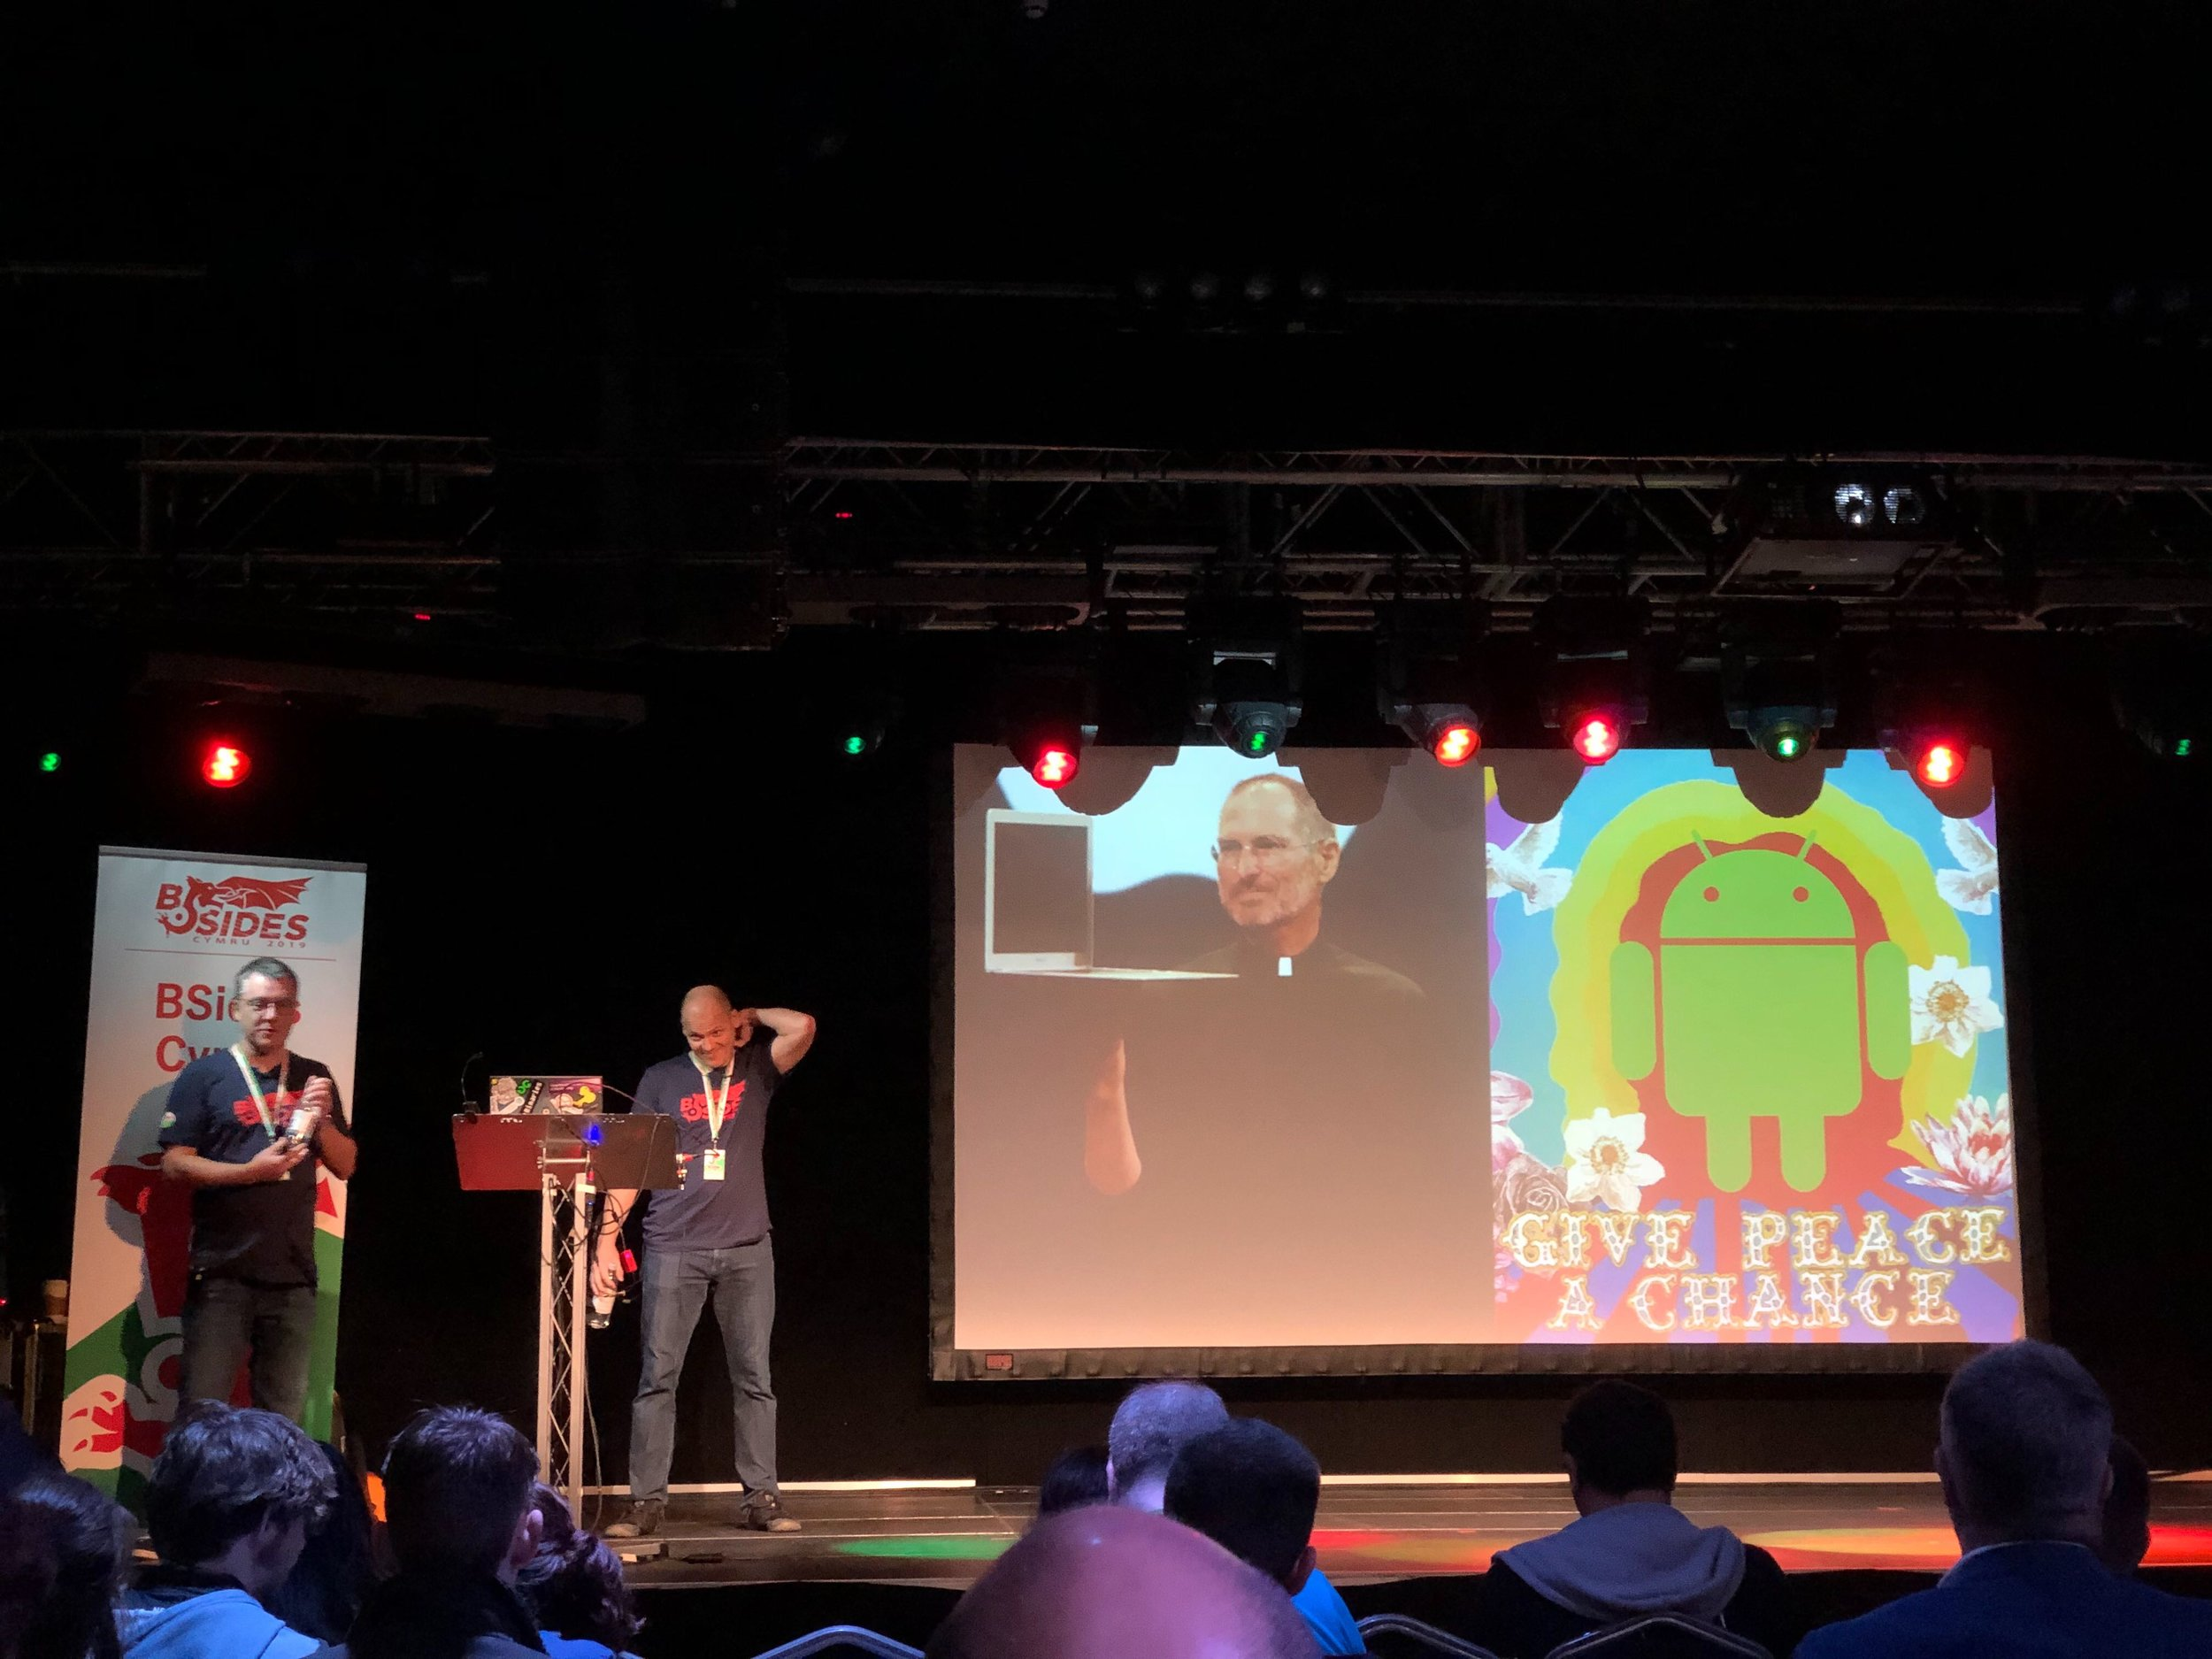 John Shier and Chester Wiesniewski of Sophos alongside 'Android Hippies' vs 'Our Dear Leader'